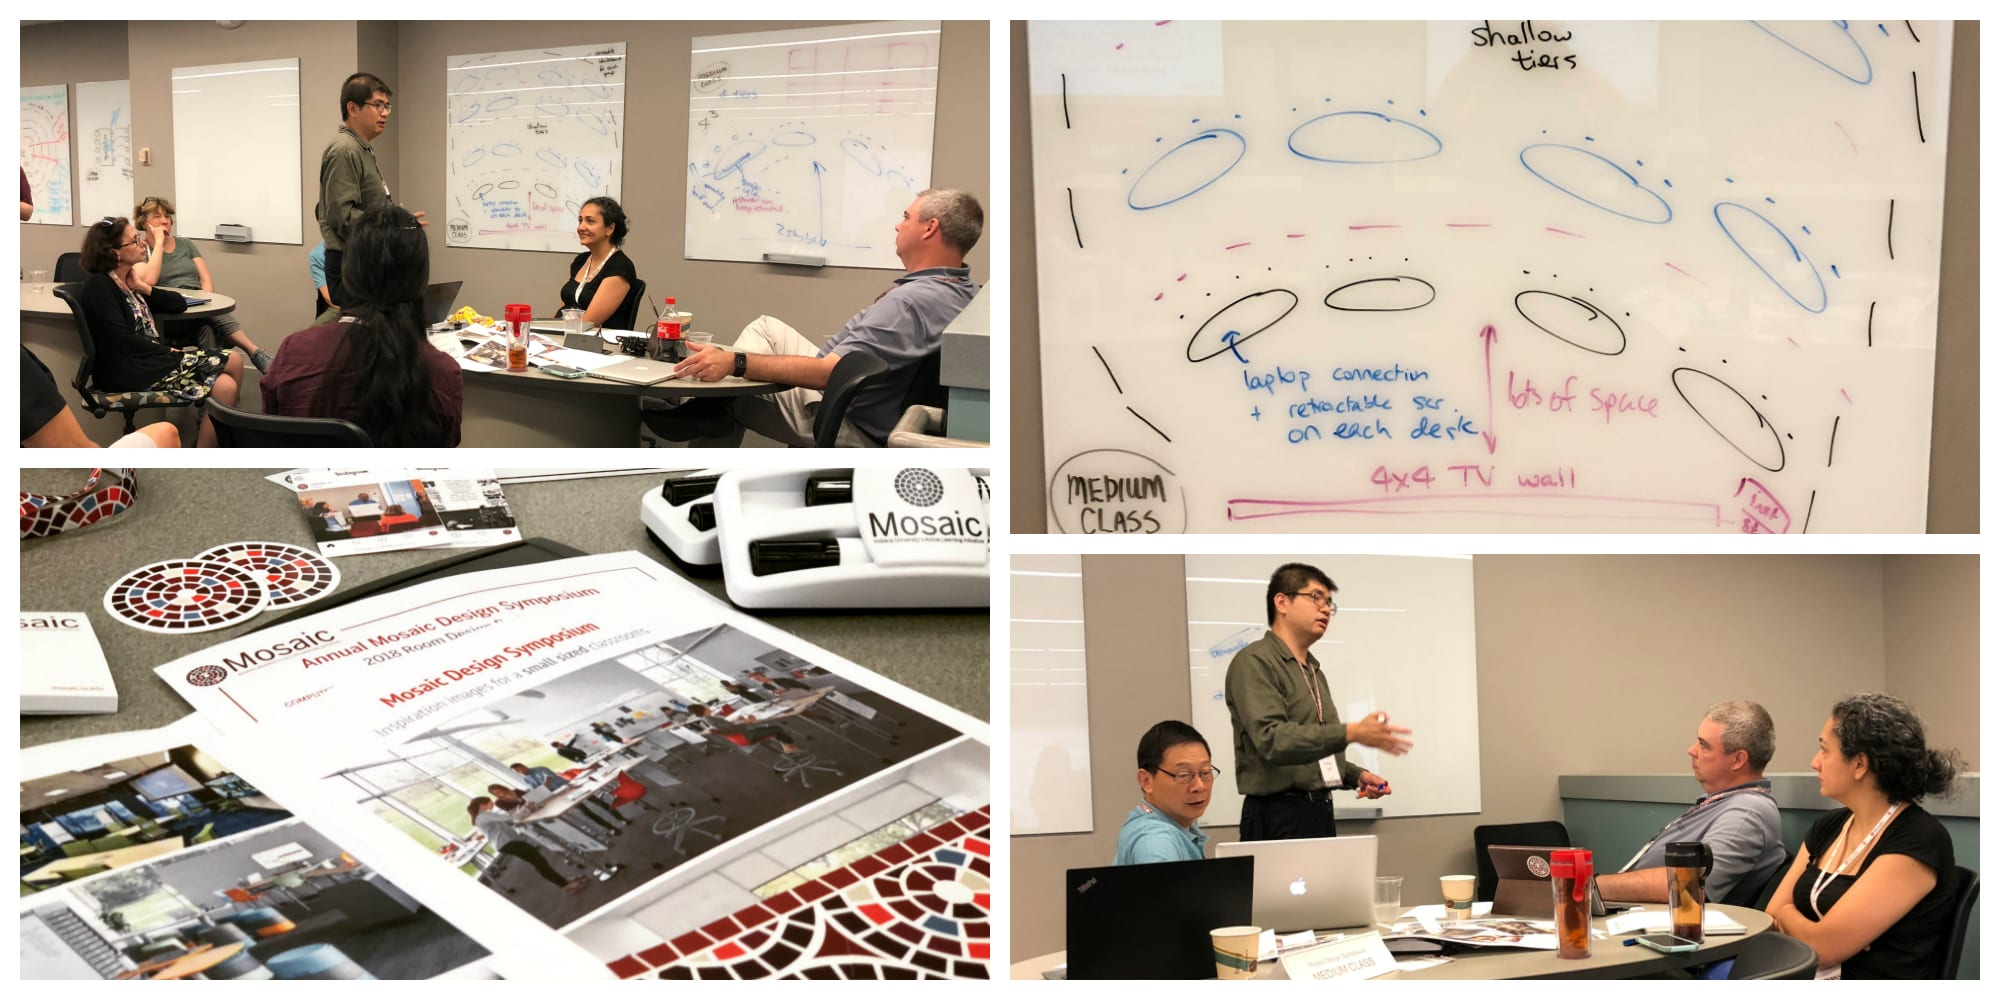 decorative image collage of group discussion, whiteboard sketch of ideas, and design symposium materials